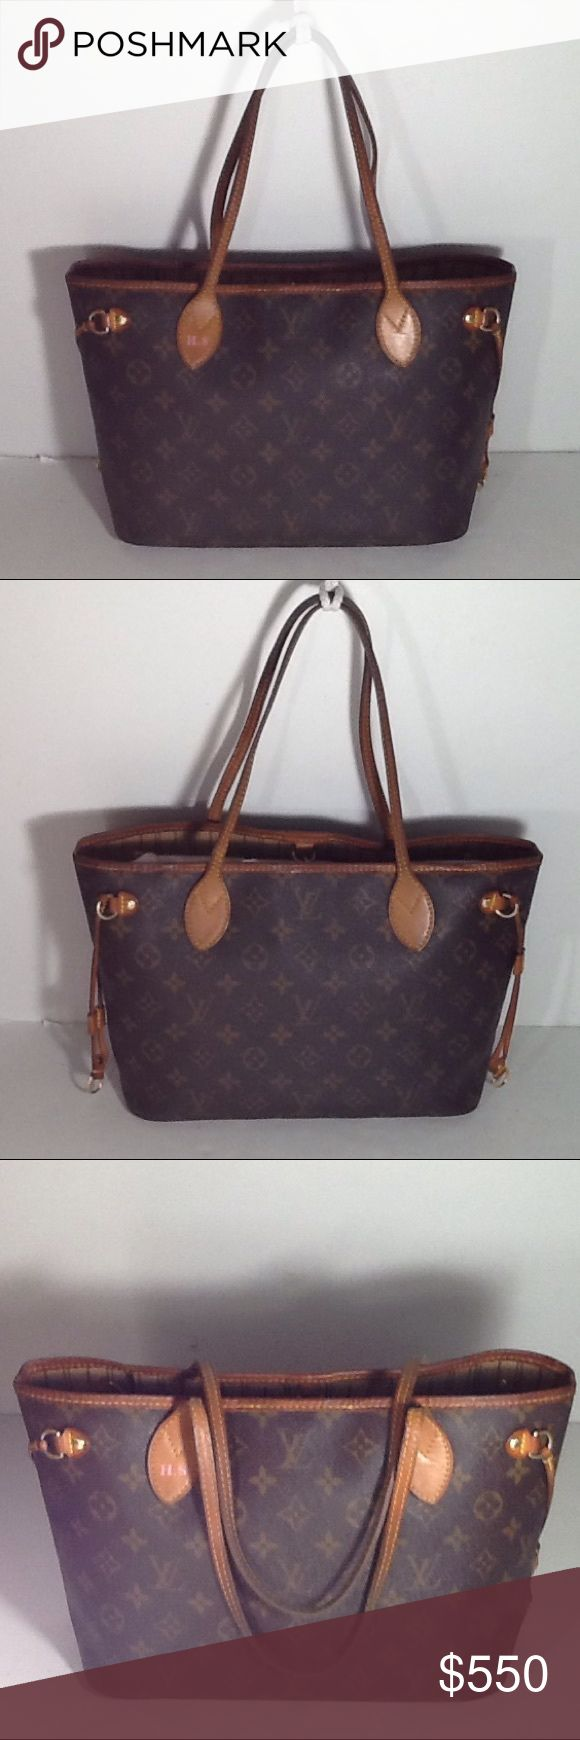 Authentic Louis Vuitton Neverfull PM Monogram Bag. Leather and straps showed signs of used and are darker due to wearing and holding. The top leather part had some cracks. Canvas is good and inside linen had sone stains. The bag was bade in France with a date code M B 0048. The dimension is 8.5, 13 and 5.5. Louis Vuitton Bags Shoulder Bags